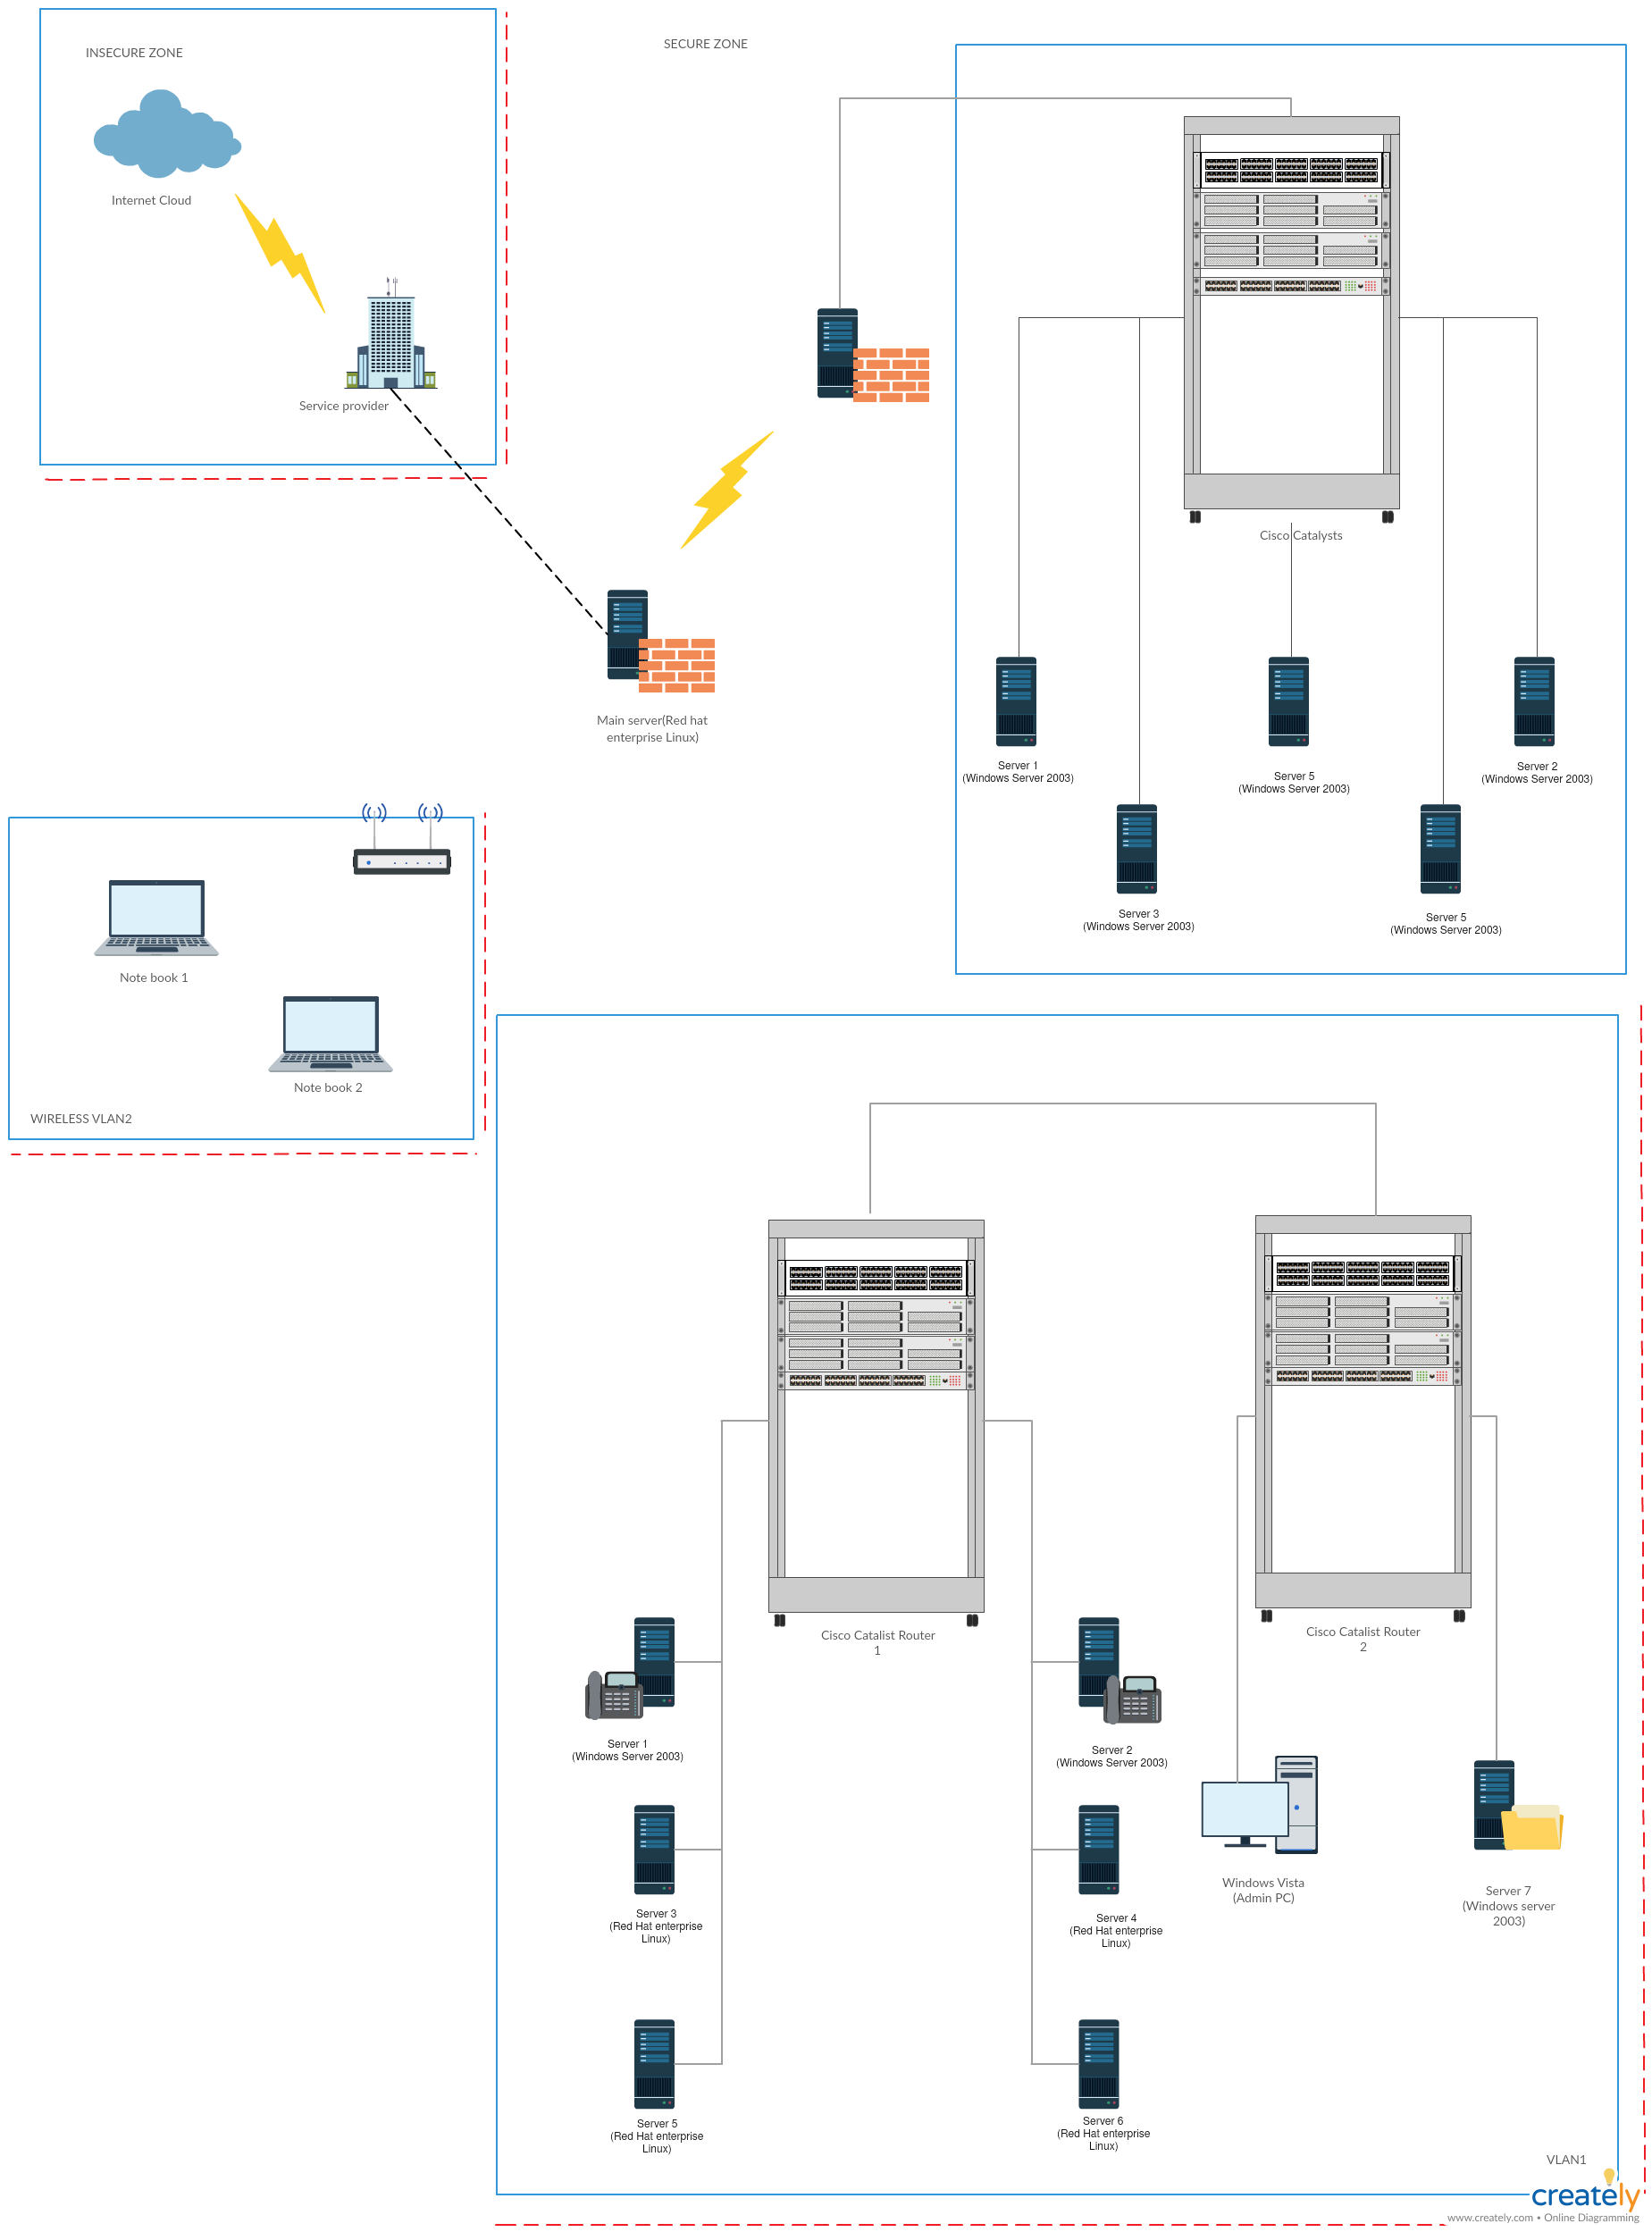 Network Diagram Guide Learn How To Draw Network Diagrams Like A Pro Diagram 3dprinting Design Excel